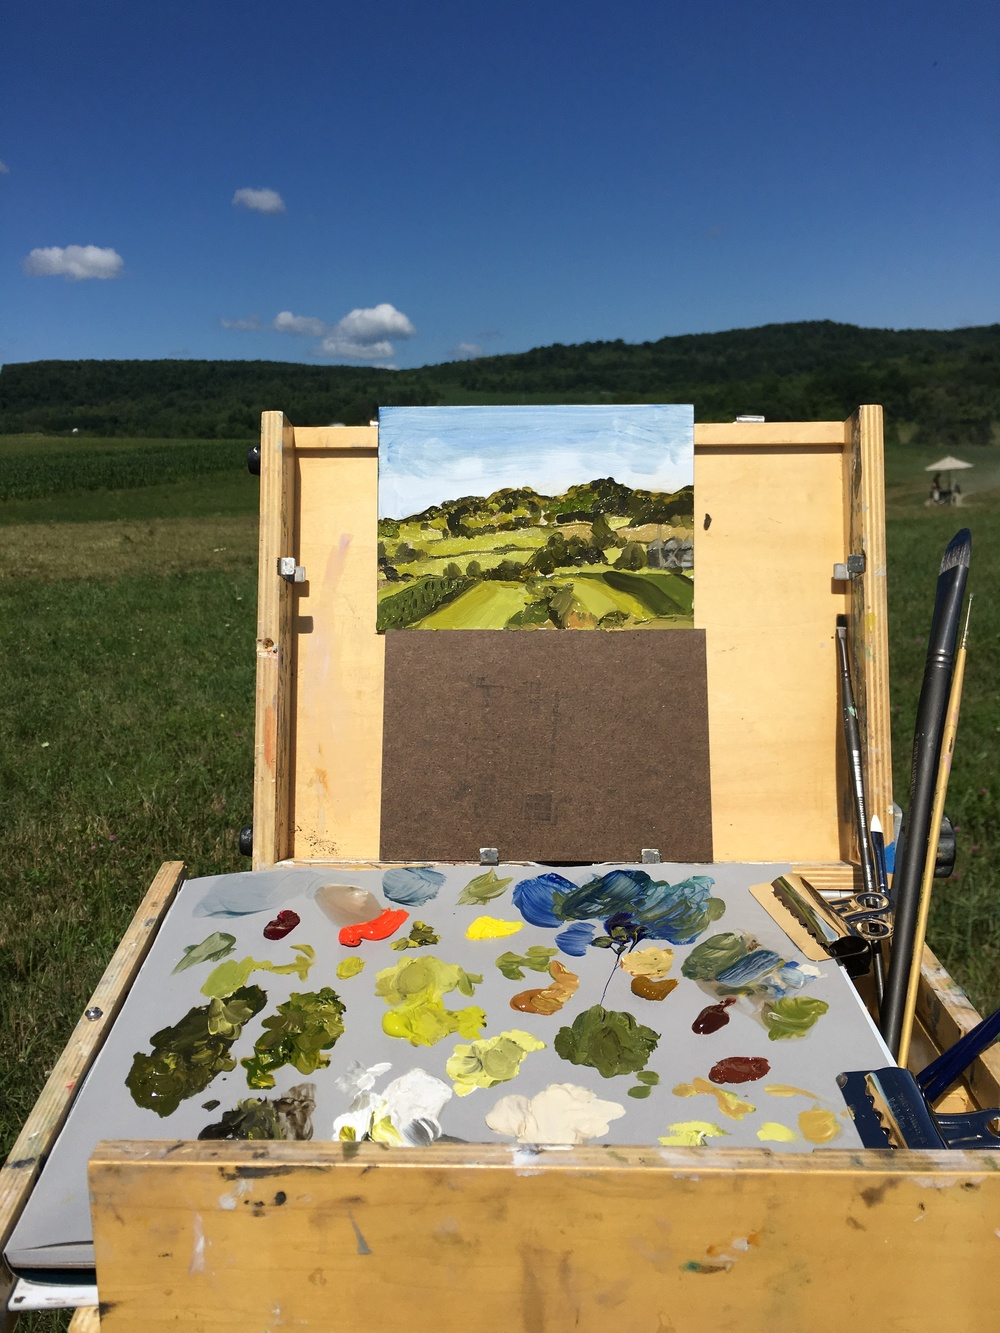 Plein Air painting at McEnroe Farms, a sister property to ChaNorth.